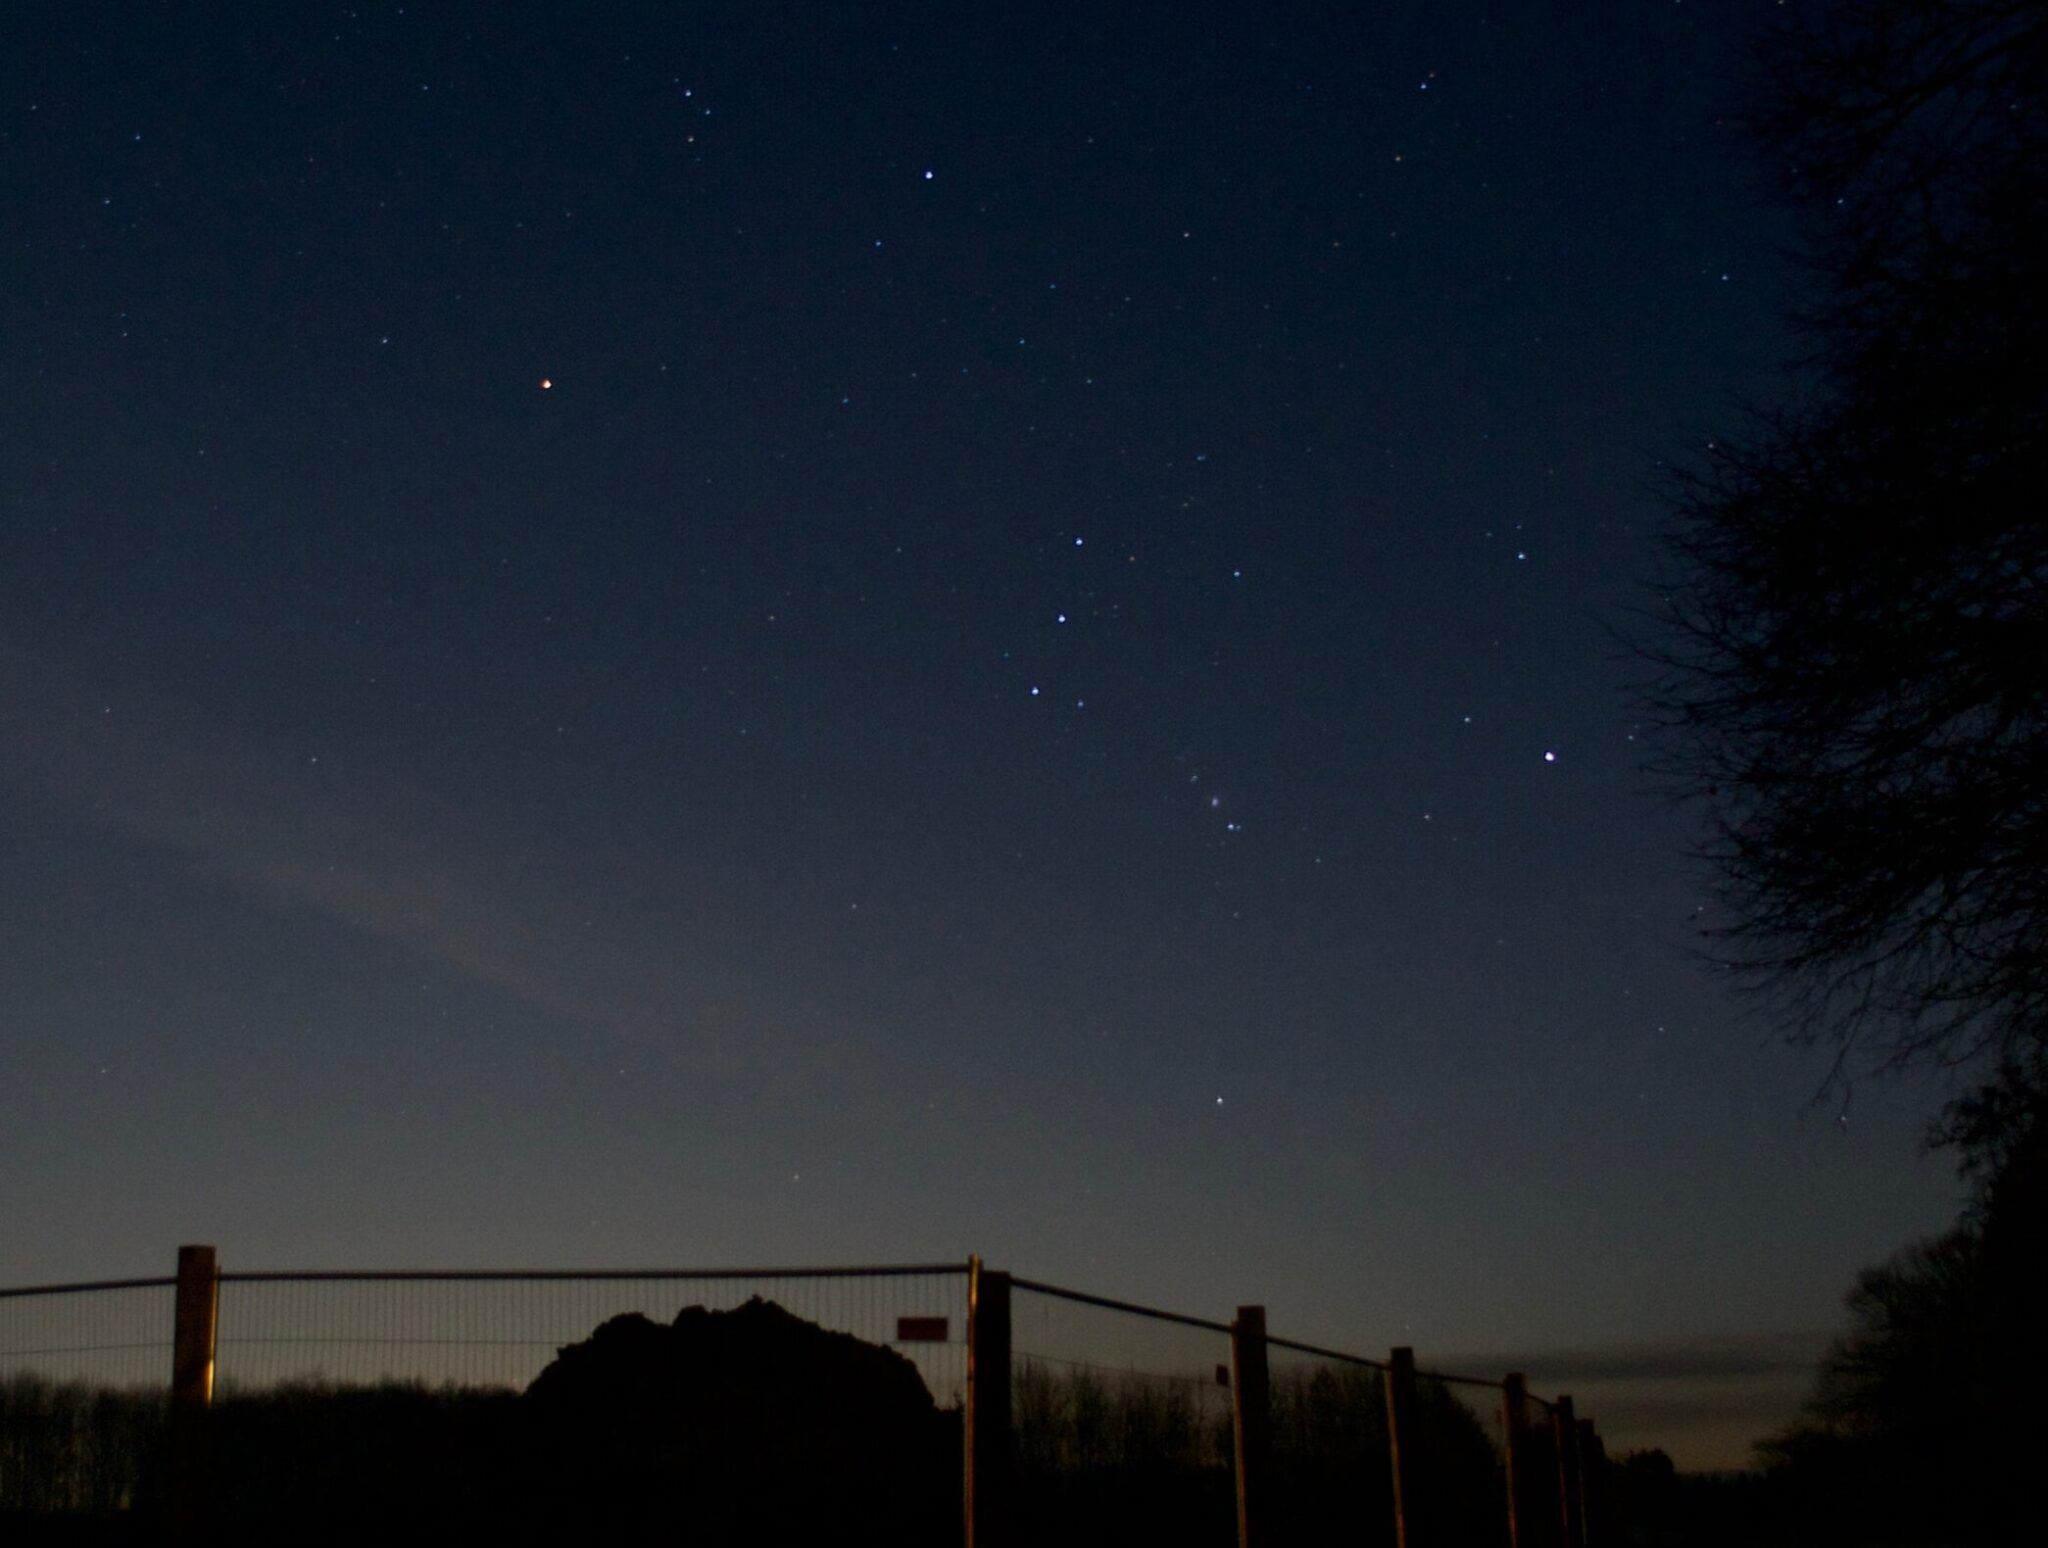 Take Part in Some Lockdown-Friendly Stargazing with Star Count 2021